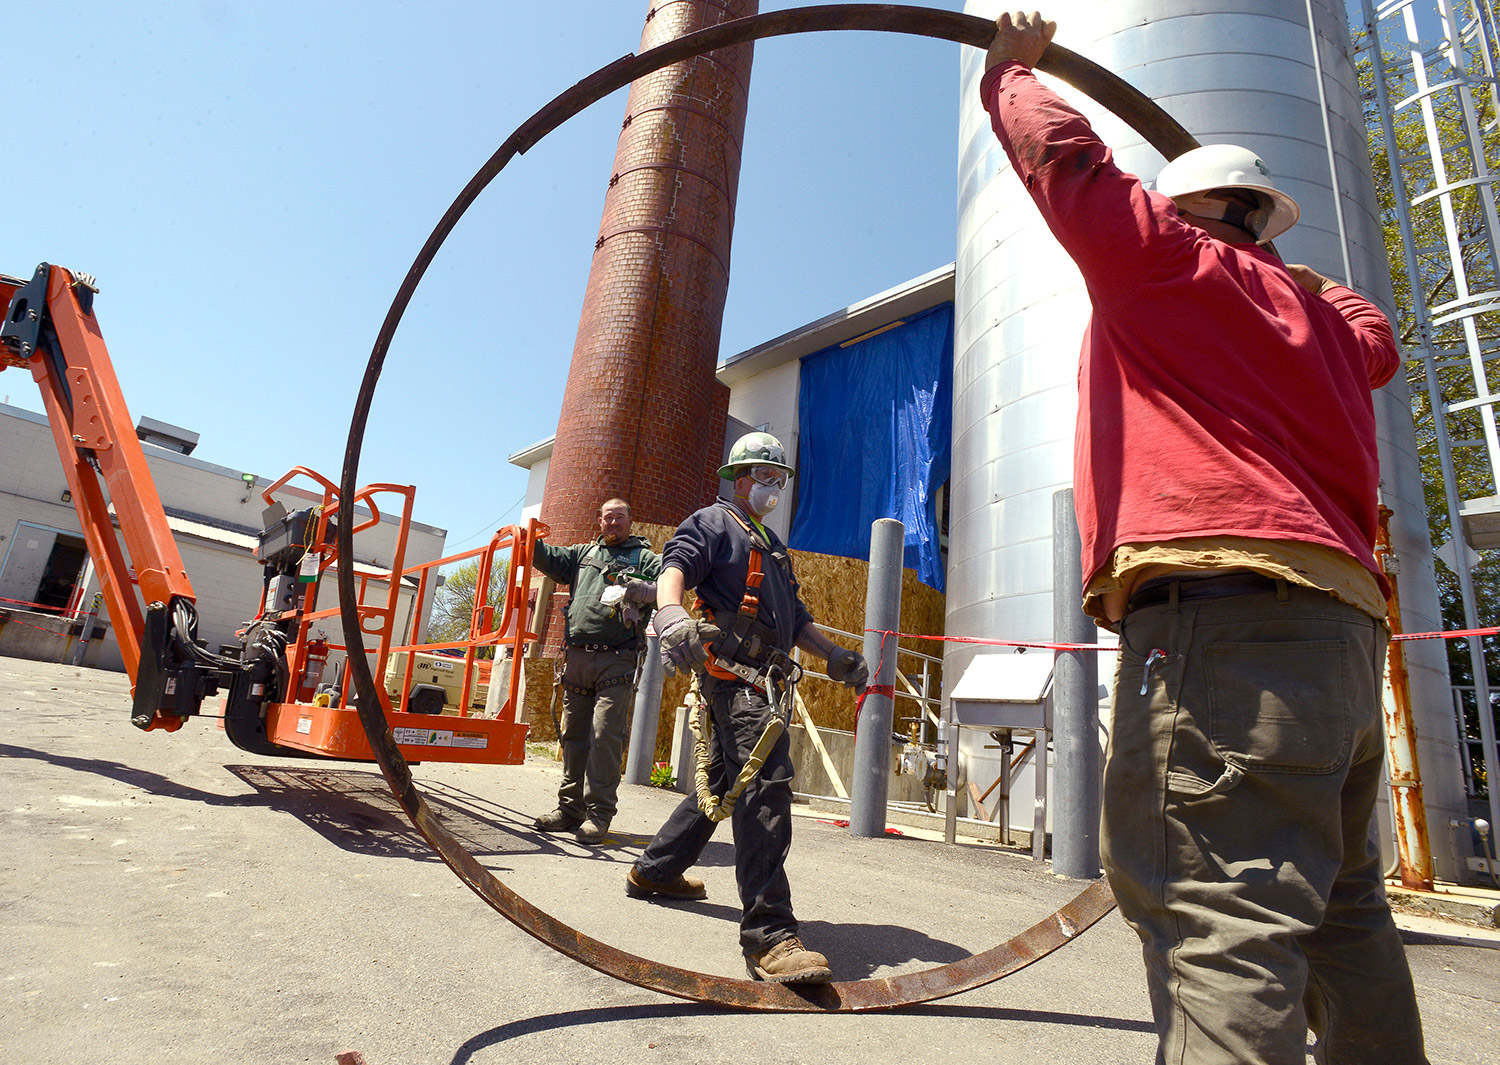 Joey Grenier and Dennis Hutchins from Tri-Stone Co. in Richmond hand off one of more than a dozen metal bands to Robert Mason as they dismantle a 105-foot-tall brick chimney attached to a old boiler plant at the University of Southern Maine campus in Portland.